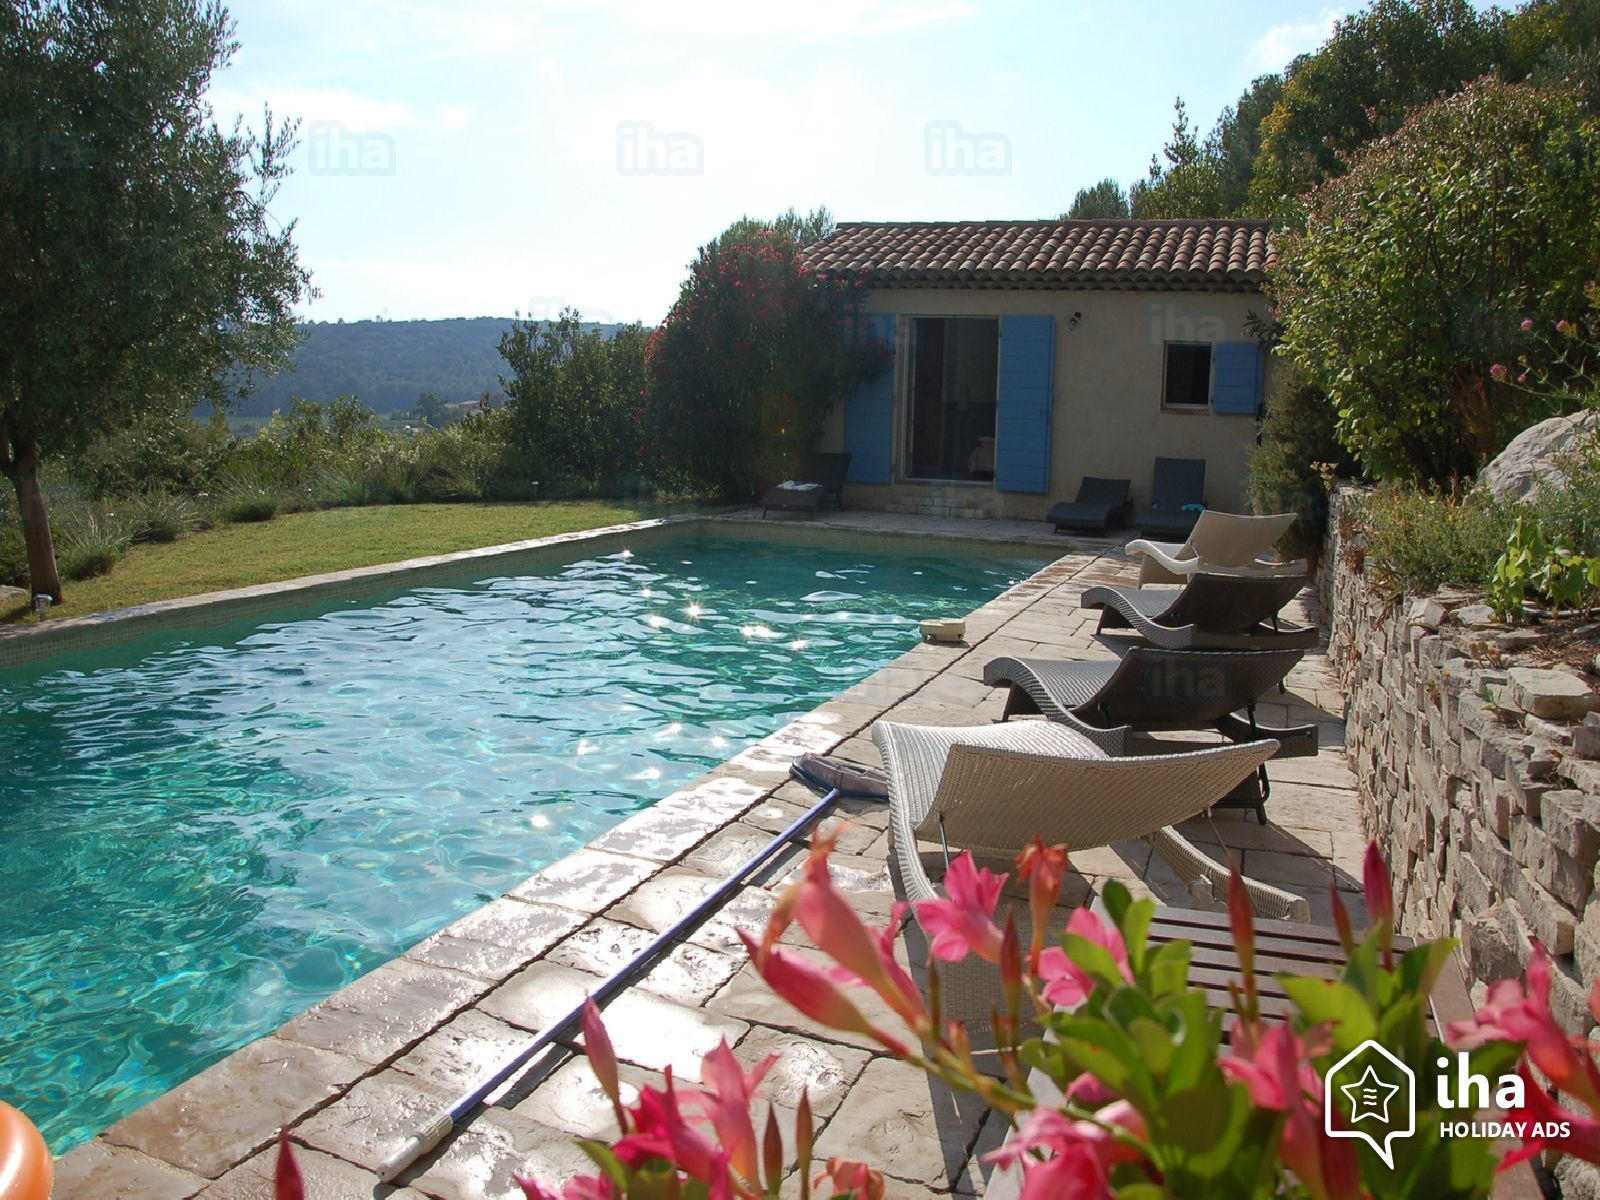 6 Bedrooms House For Rent From 10 To 12 People destiné Cash Piscine Venelles